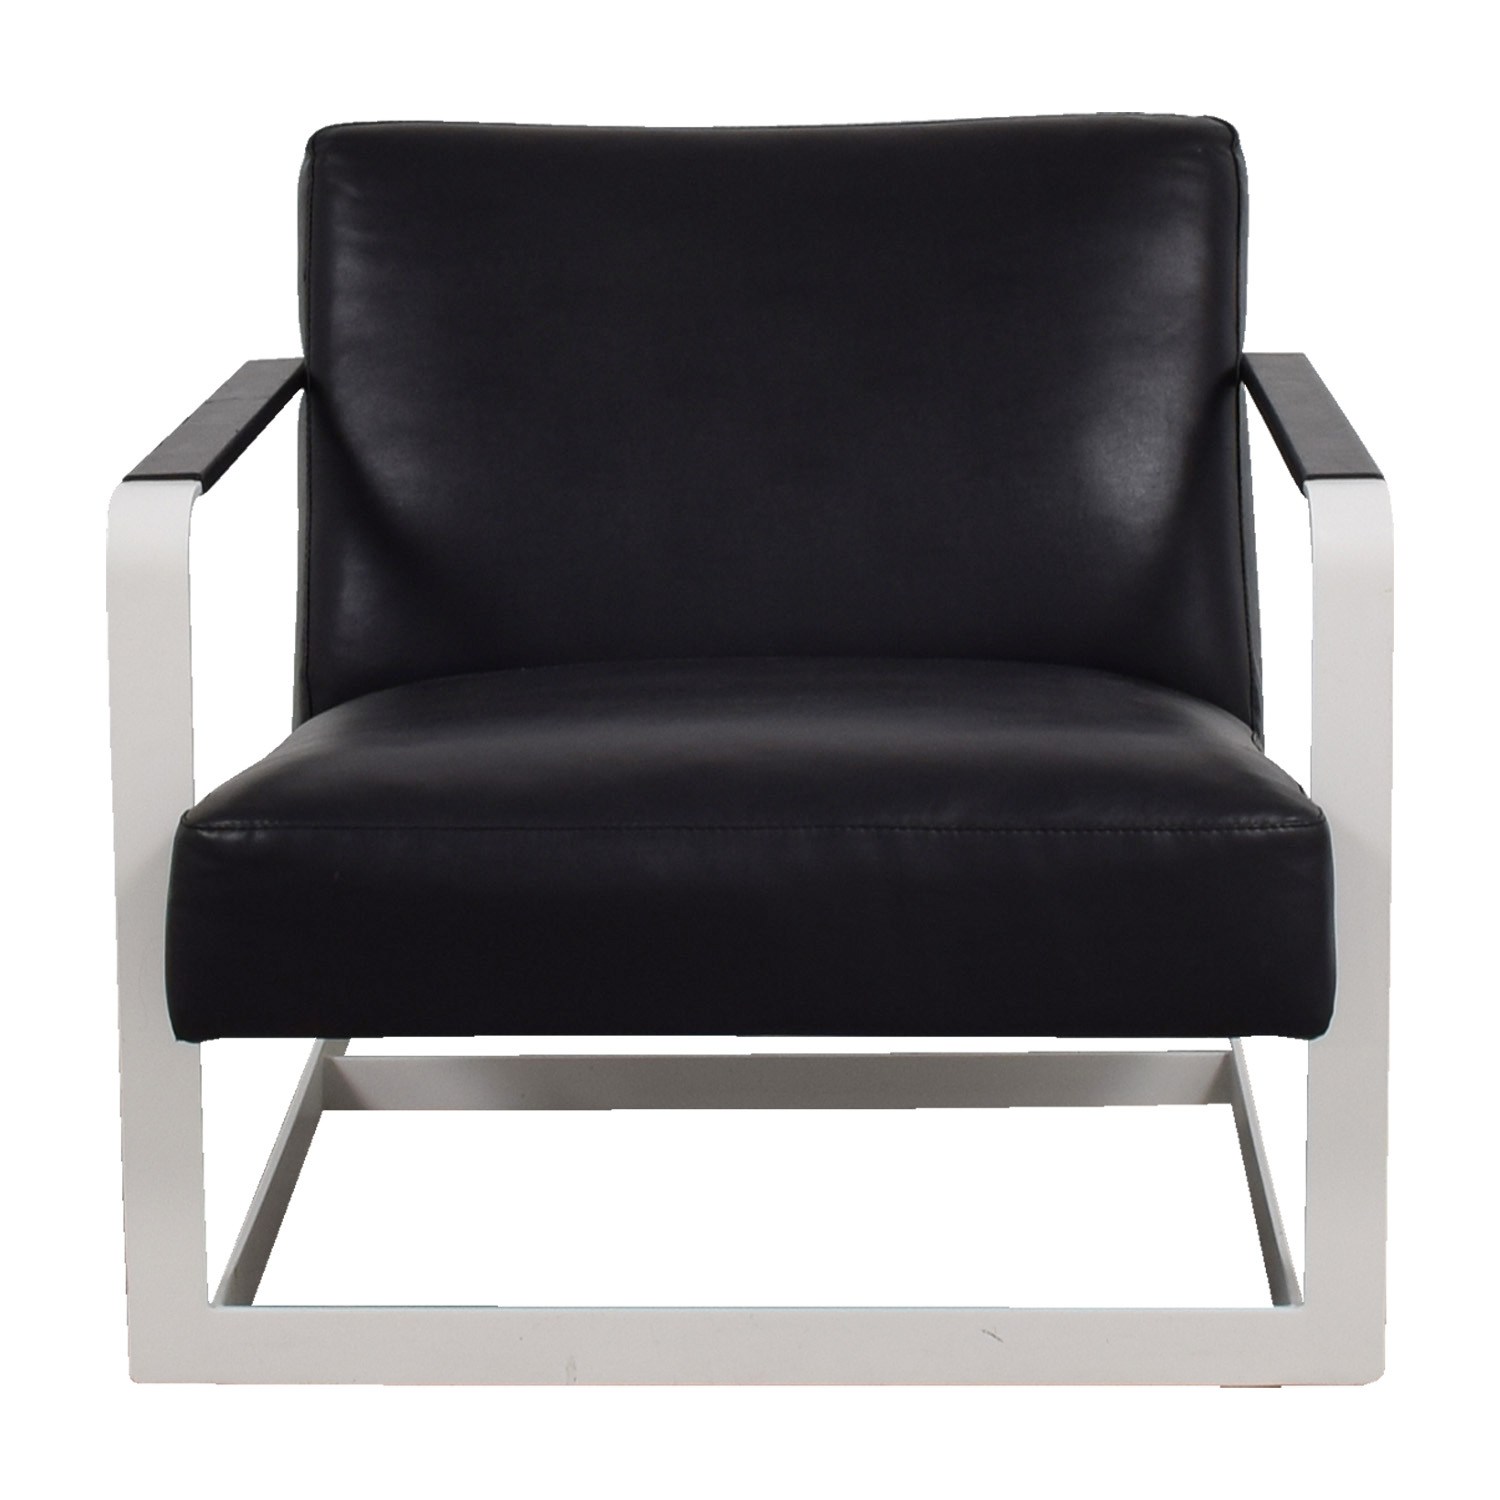 Modloft Modloft Crosby Black and White Lounge Chair nj